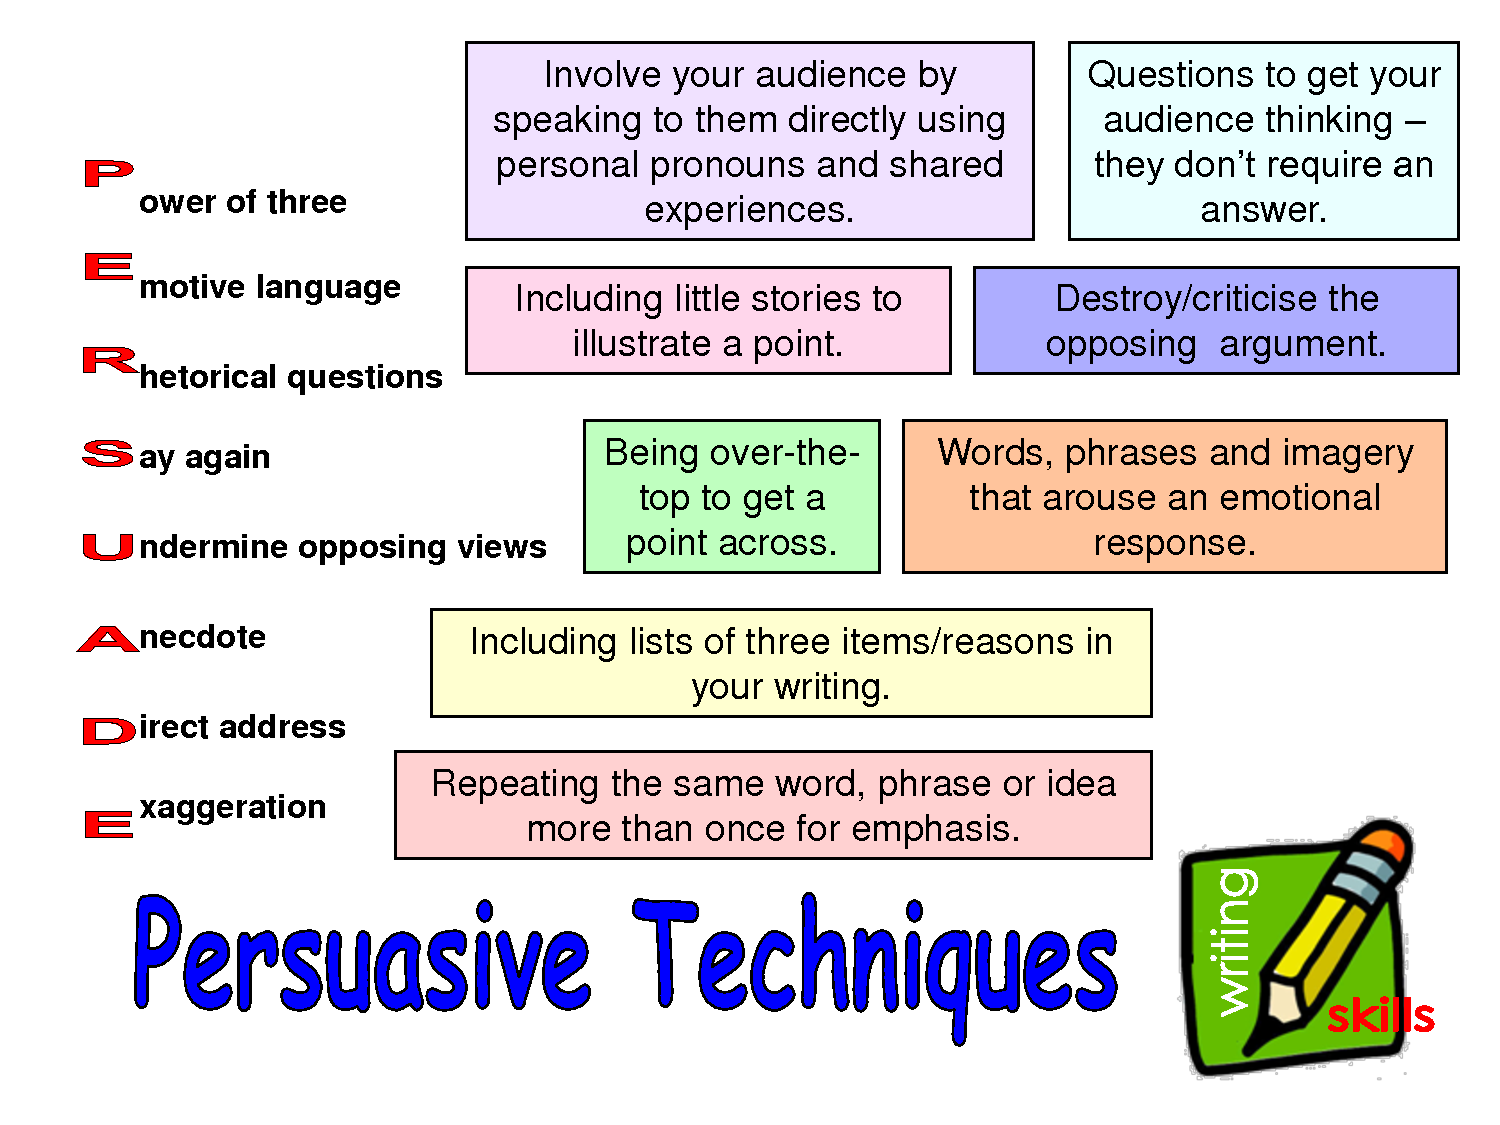 persuasive techniques improving your writing  persuasive techniques persuasive writing techniquespersuasive textsessay